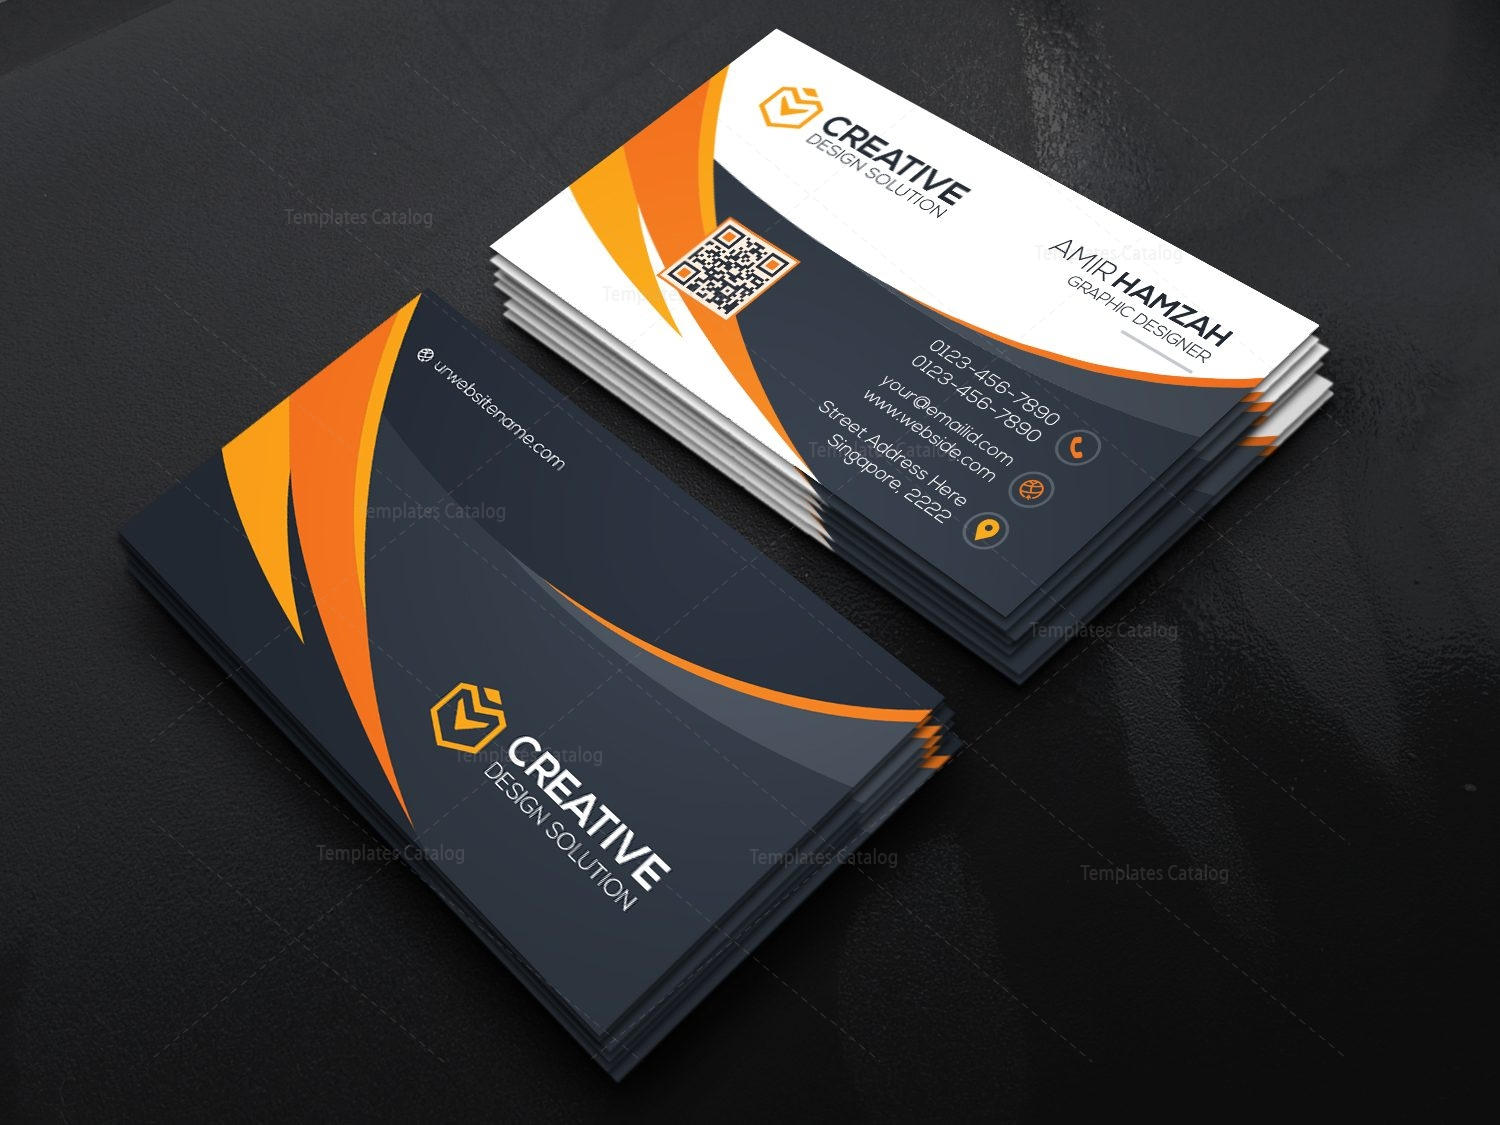 Stylish Business Card Template 000467 - Template Catalog